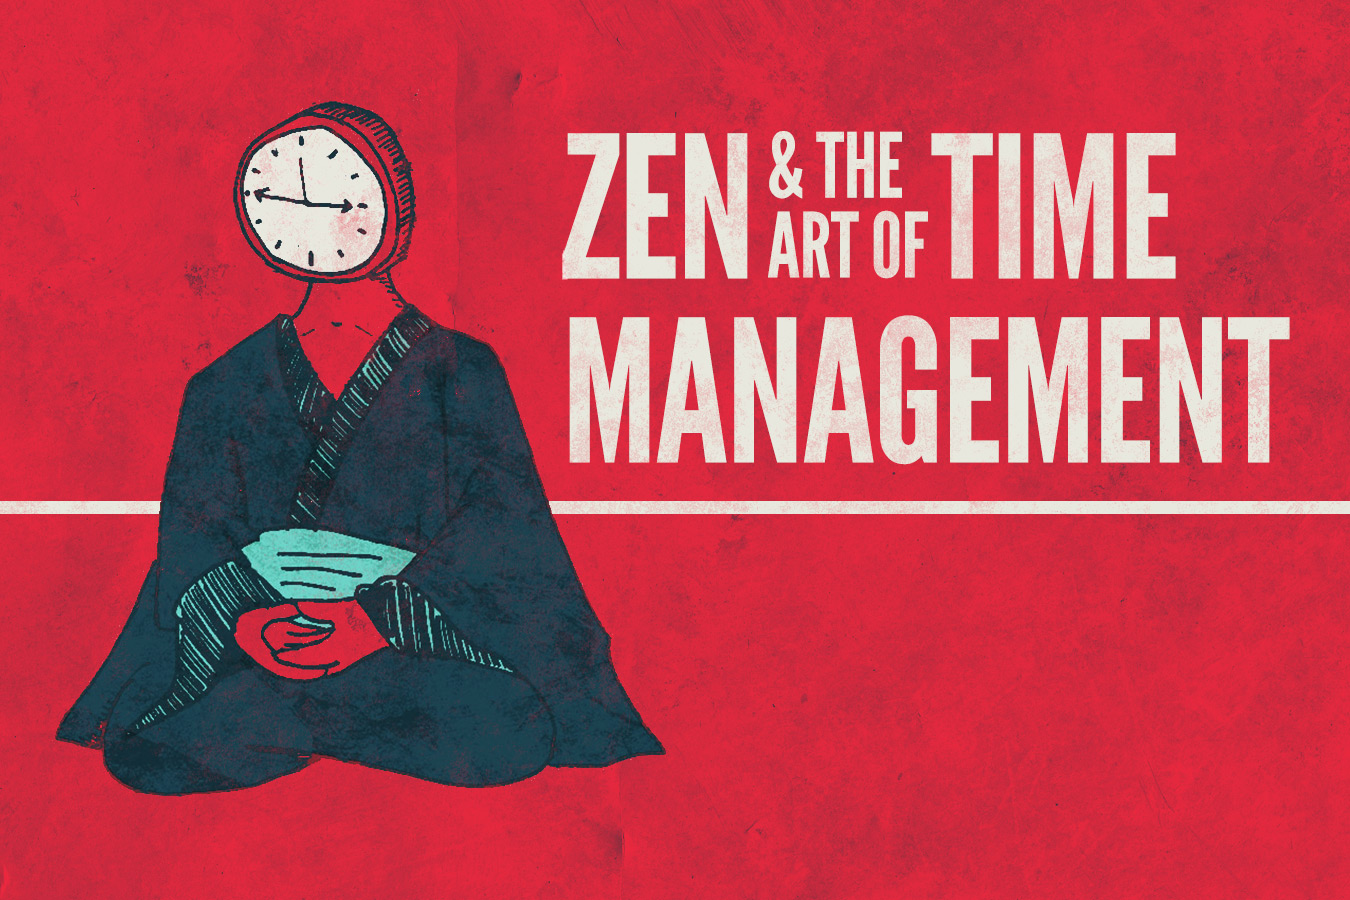 Zen and the Art of Time Management